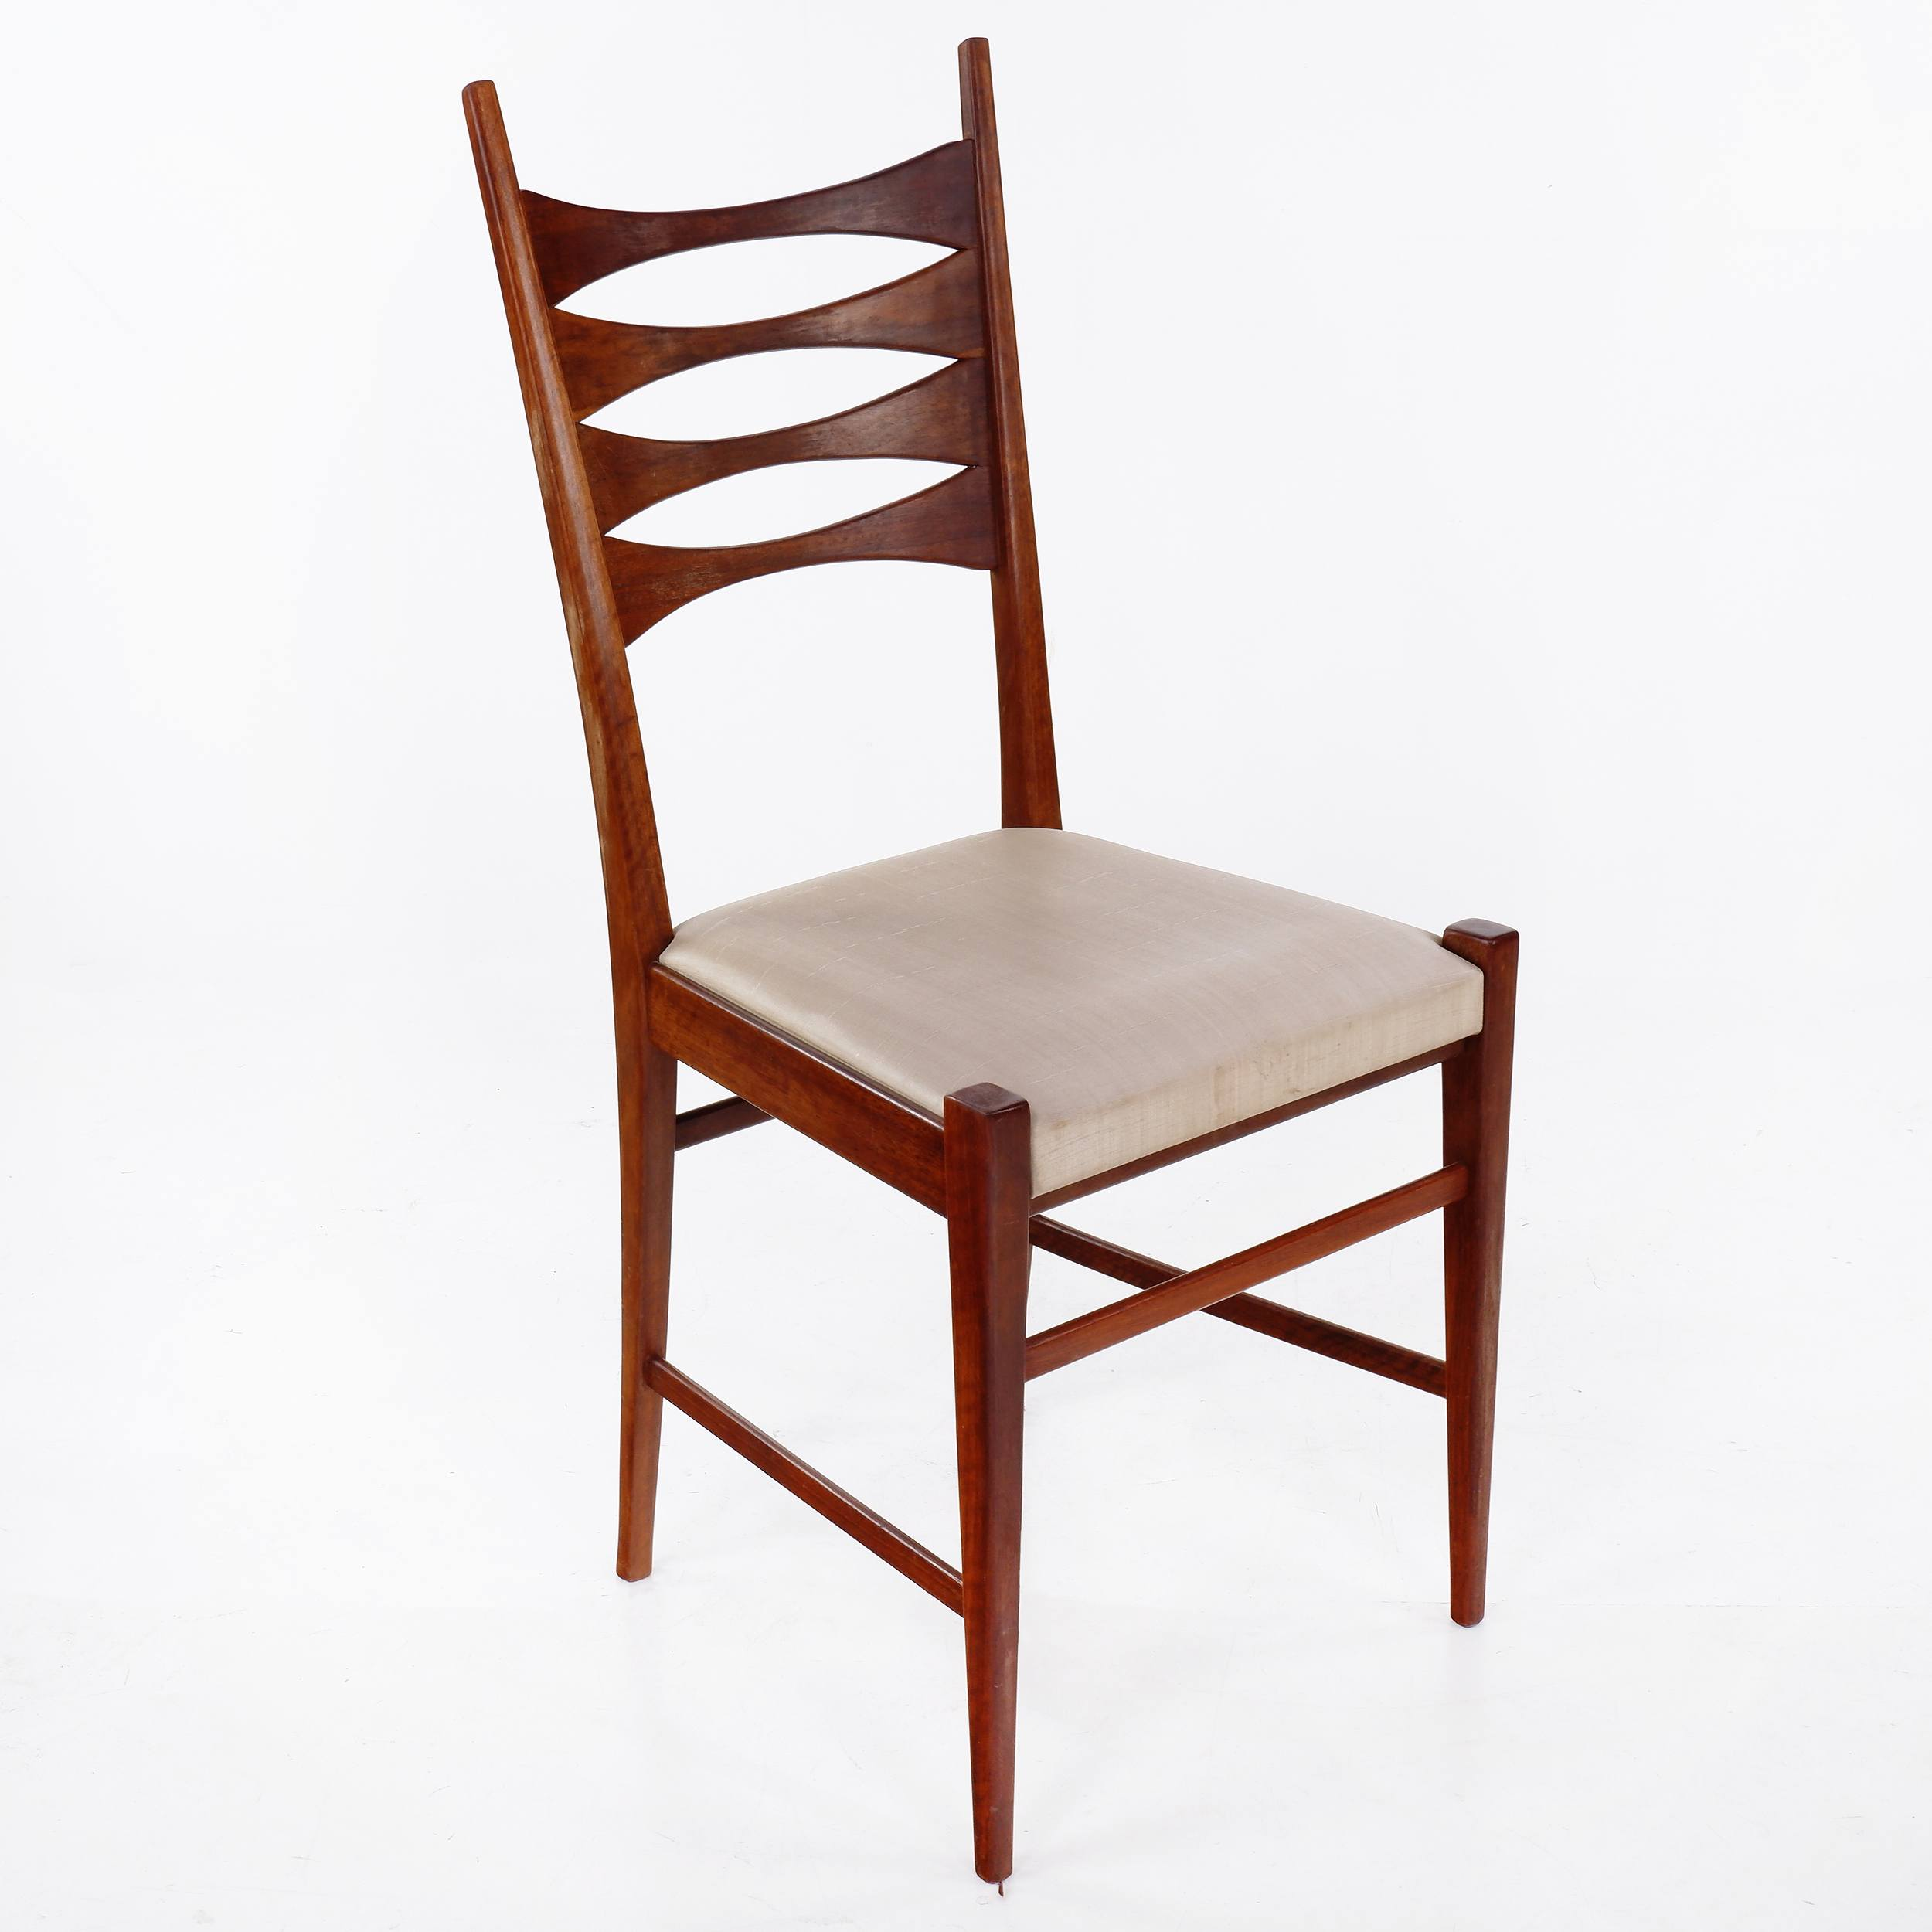 'Set of Four Hand Crafted Jarrah Dining Chairs with Satin Vinyl Upholstered Seats - Circa 1970s'